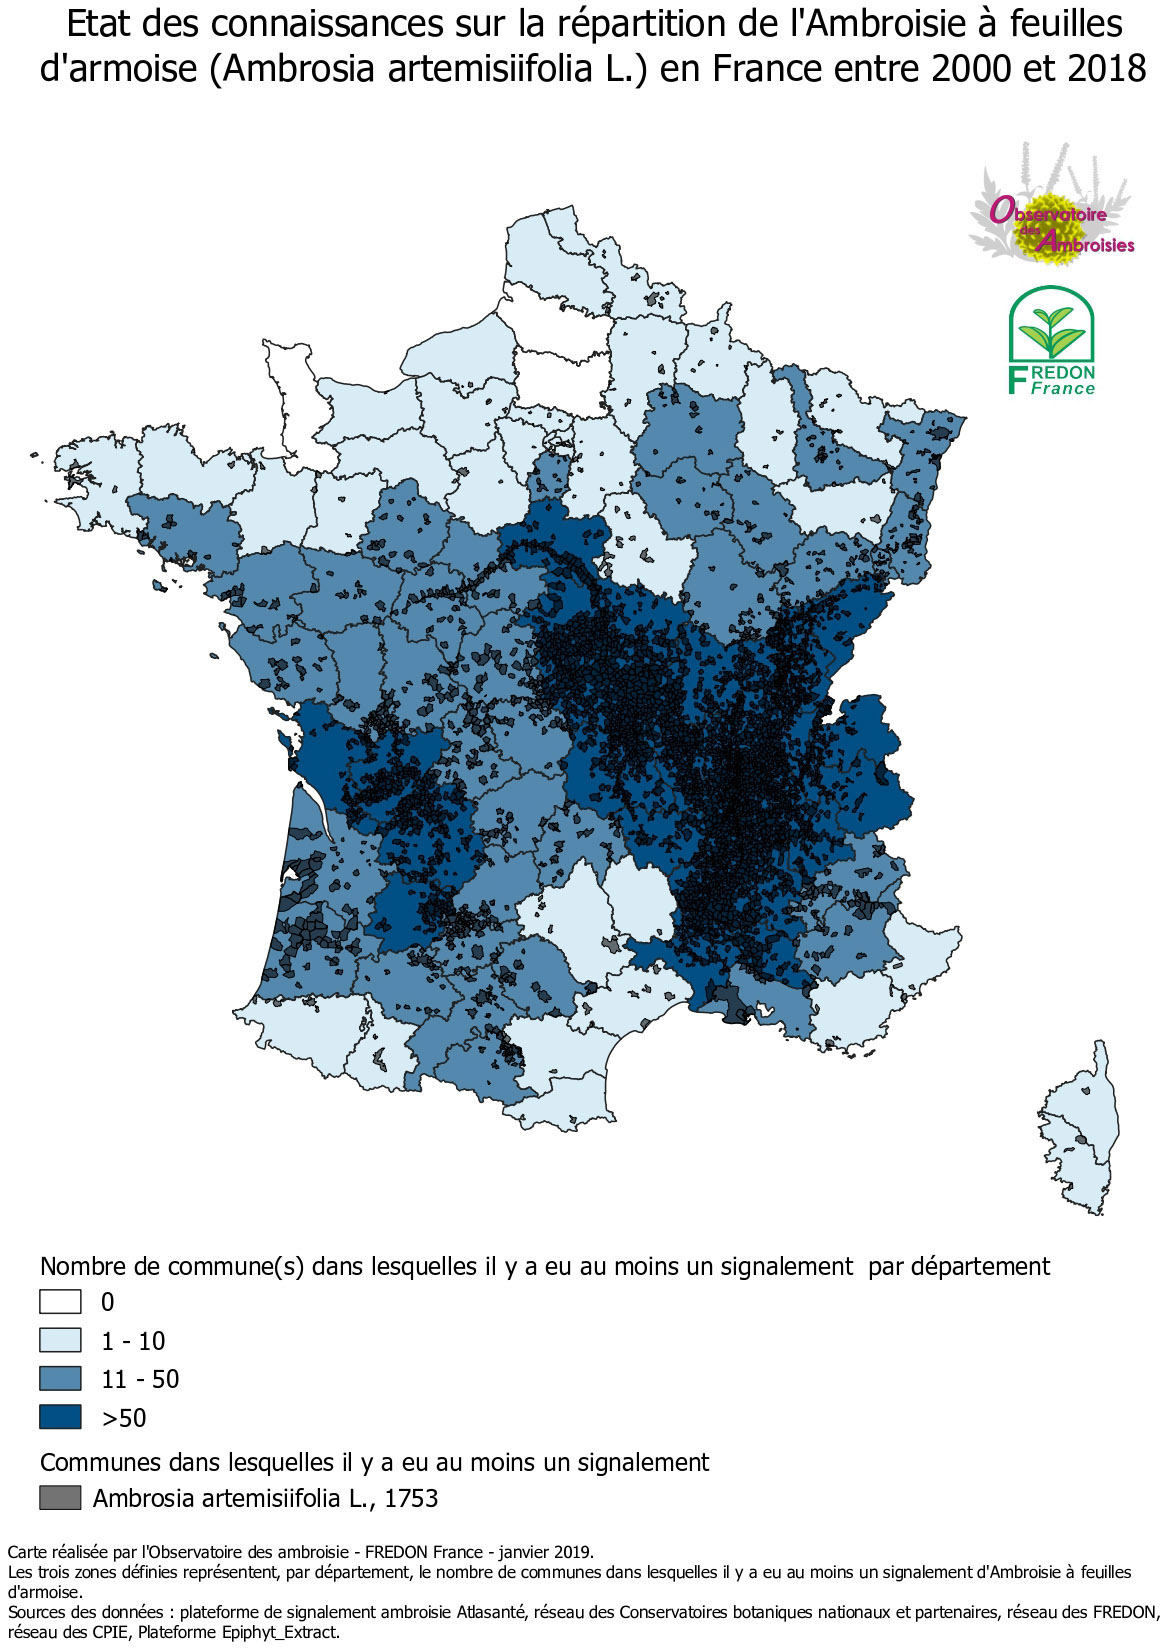 Carte de répartition de l'ambroisie en France